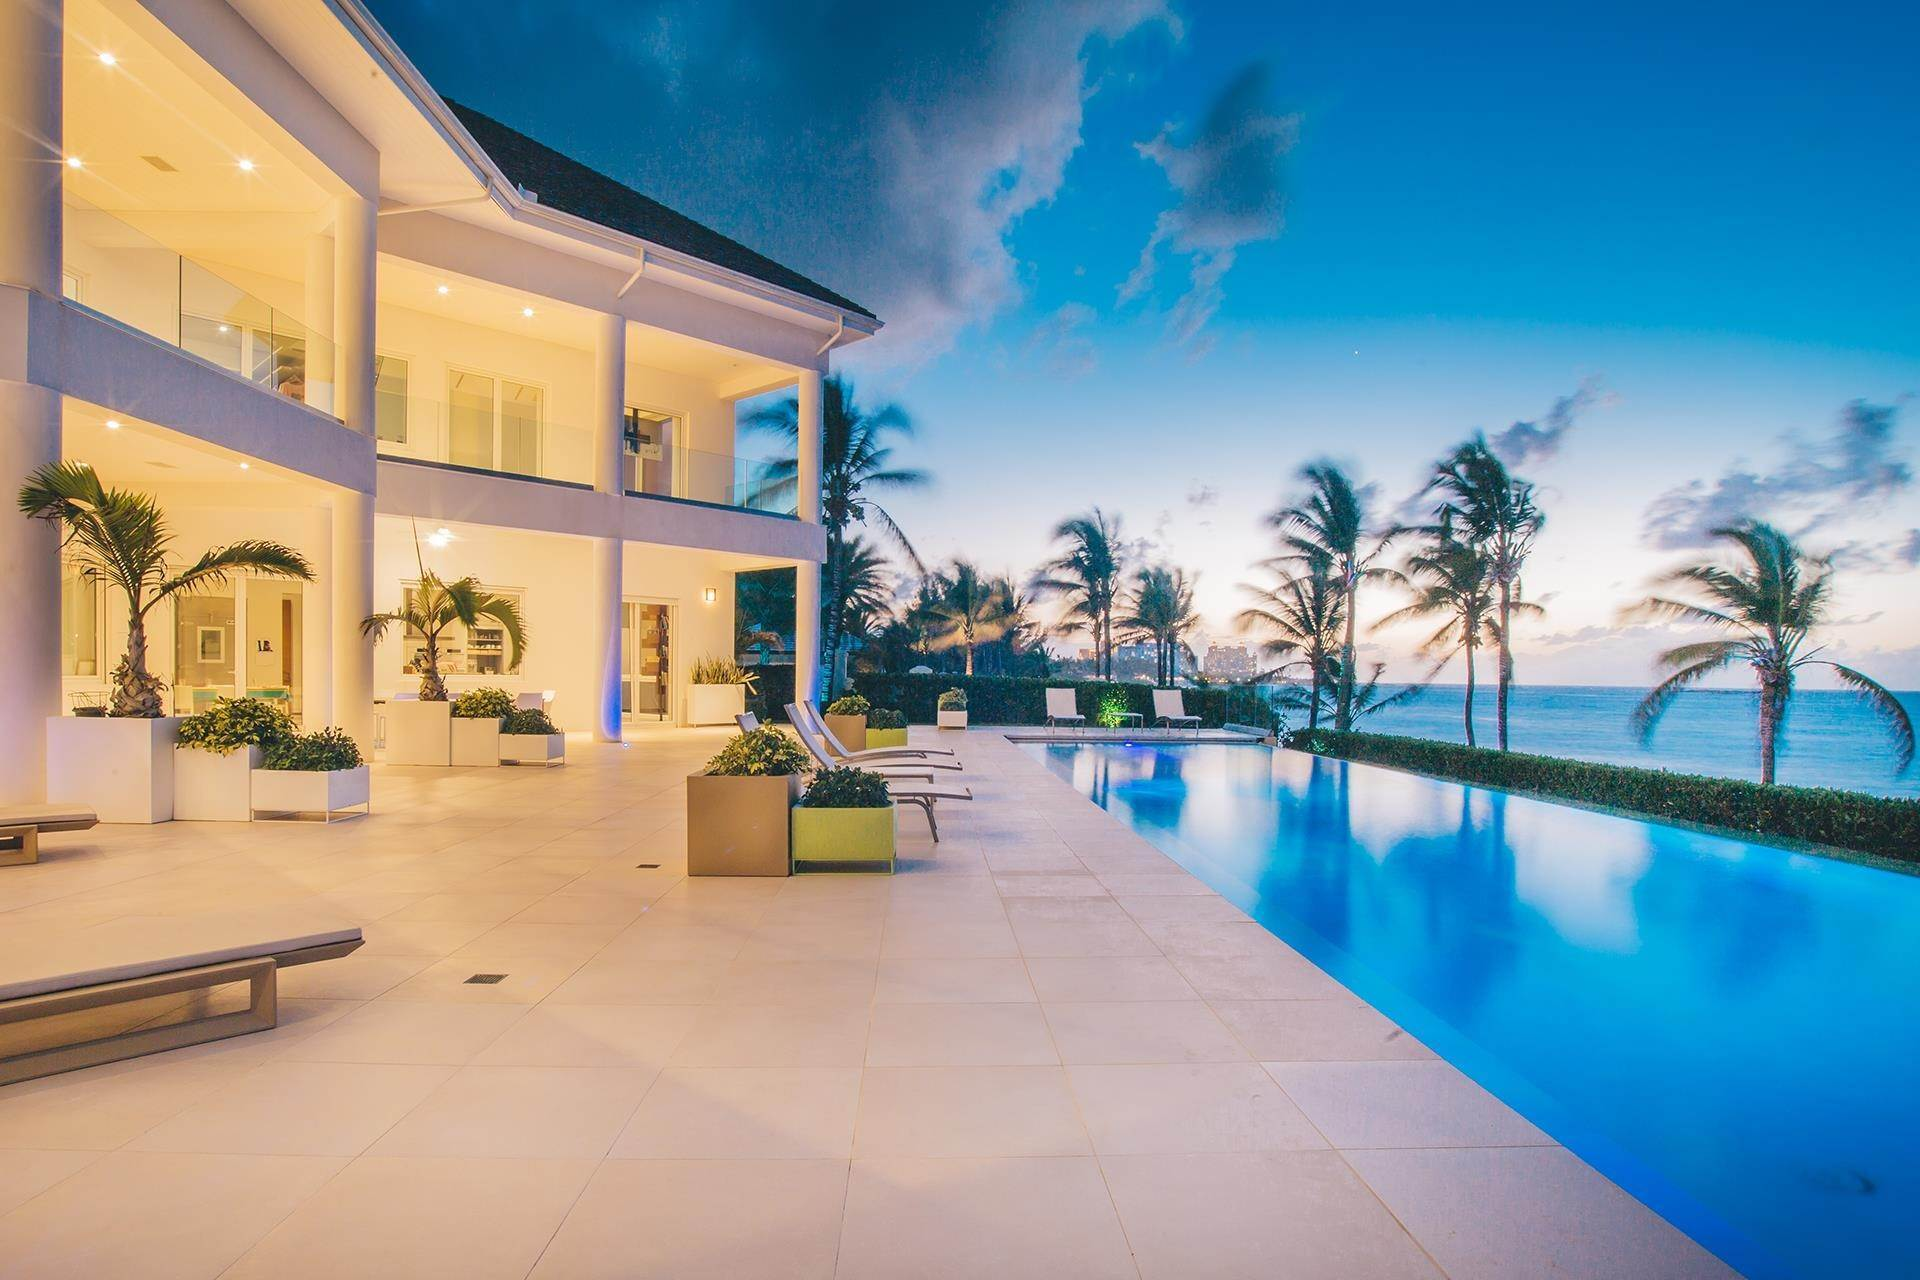 Single Family Homes for Sale at 3 North Shore Terrace, A Contemporary Masterpiece Ocean Club Estates, Paradise Island, Nassau And Paradise Island Bahamas